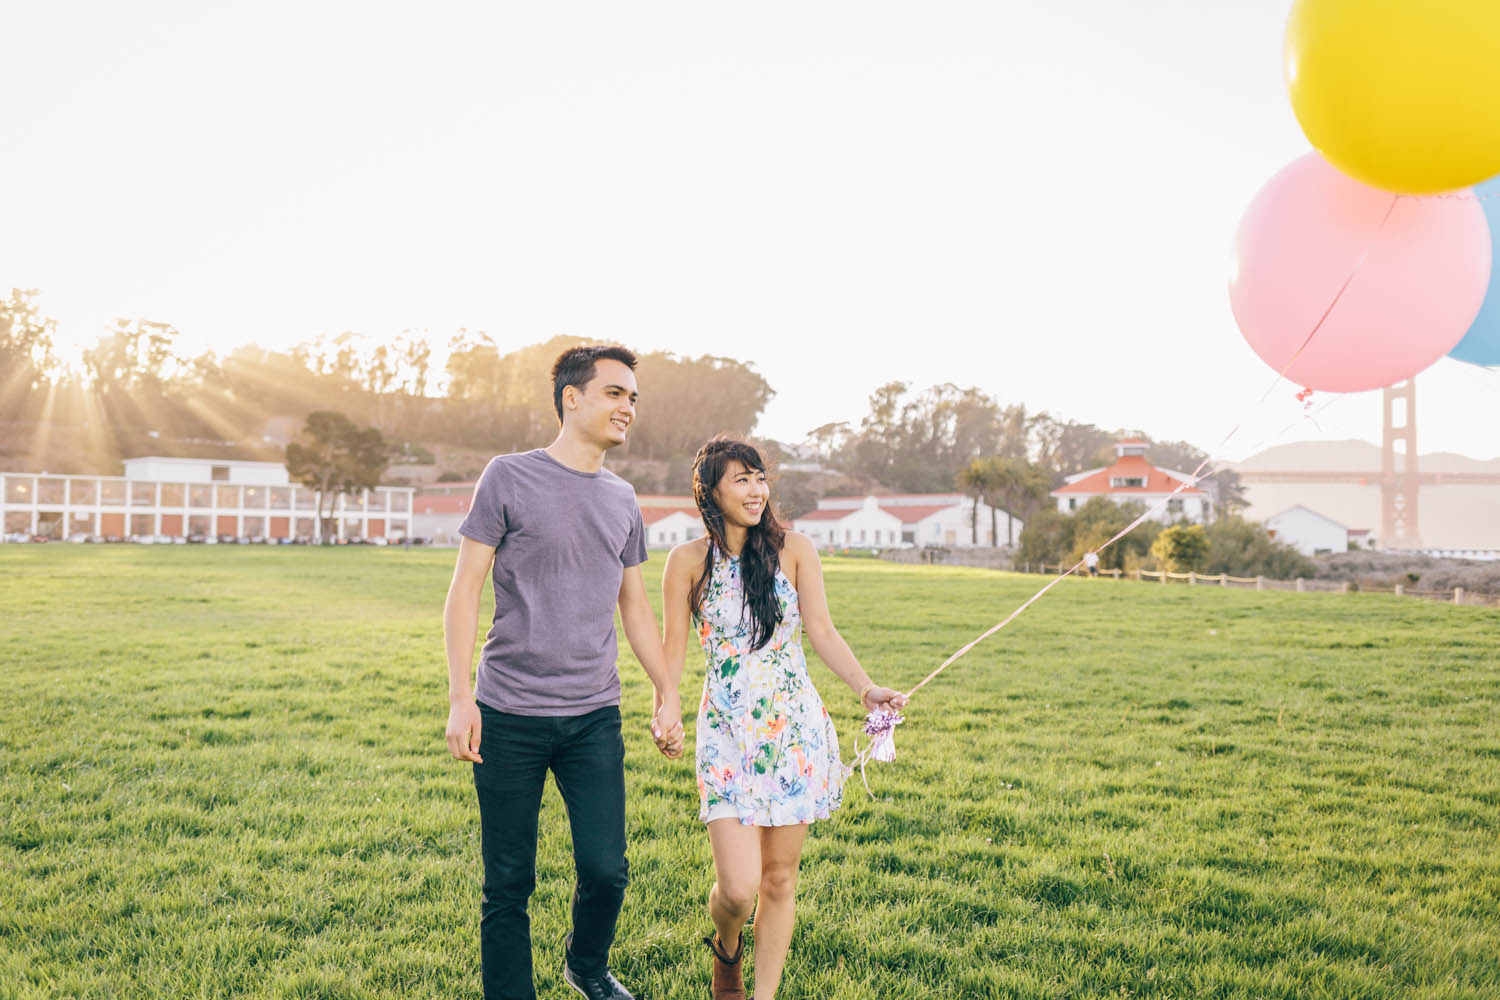 San Francisco Engagement Session Crissy Fields Palace of Fine Arts Engagement Photos by Engagement and Wedding Photographer JBJ Pictures-23.jpg